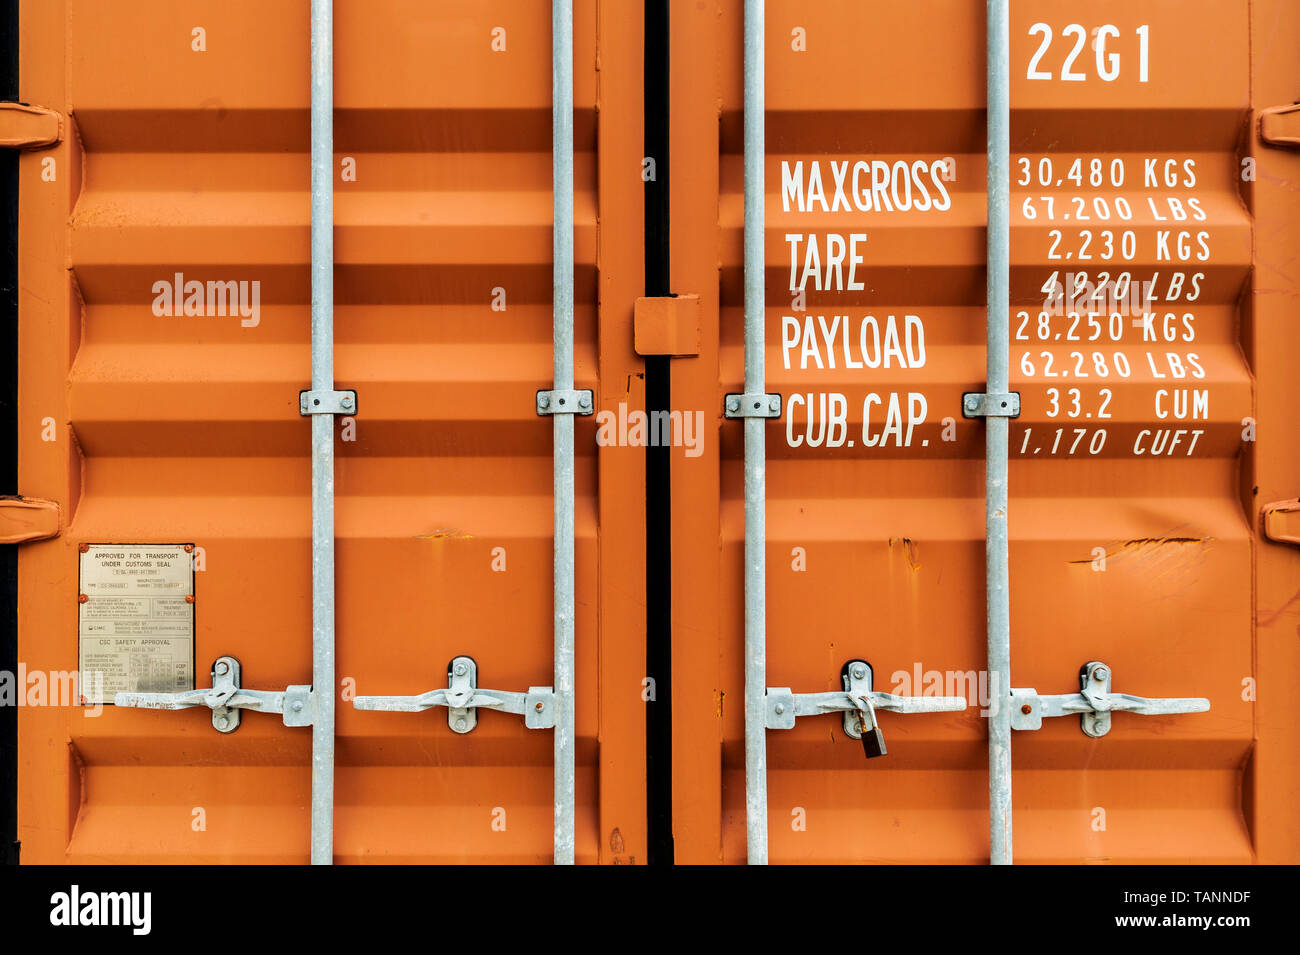 UDINE, ITALY, JULY 30, 2012: Intermodal container door close-up. - Stock Image